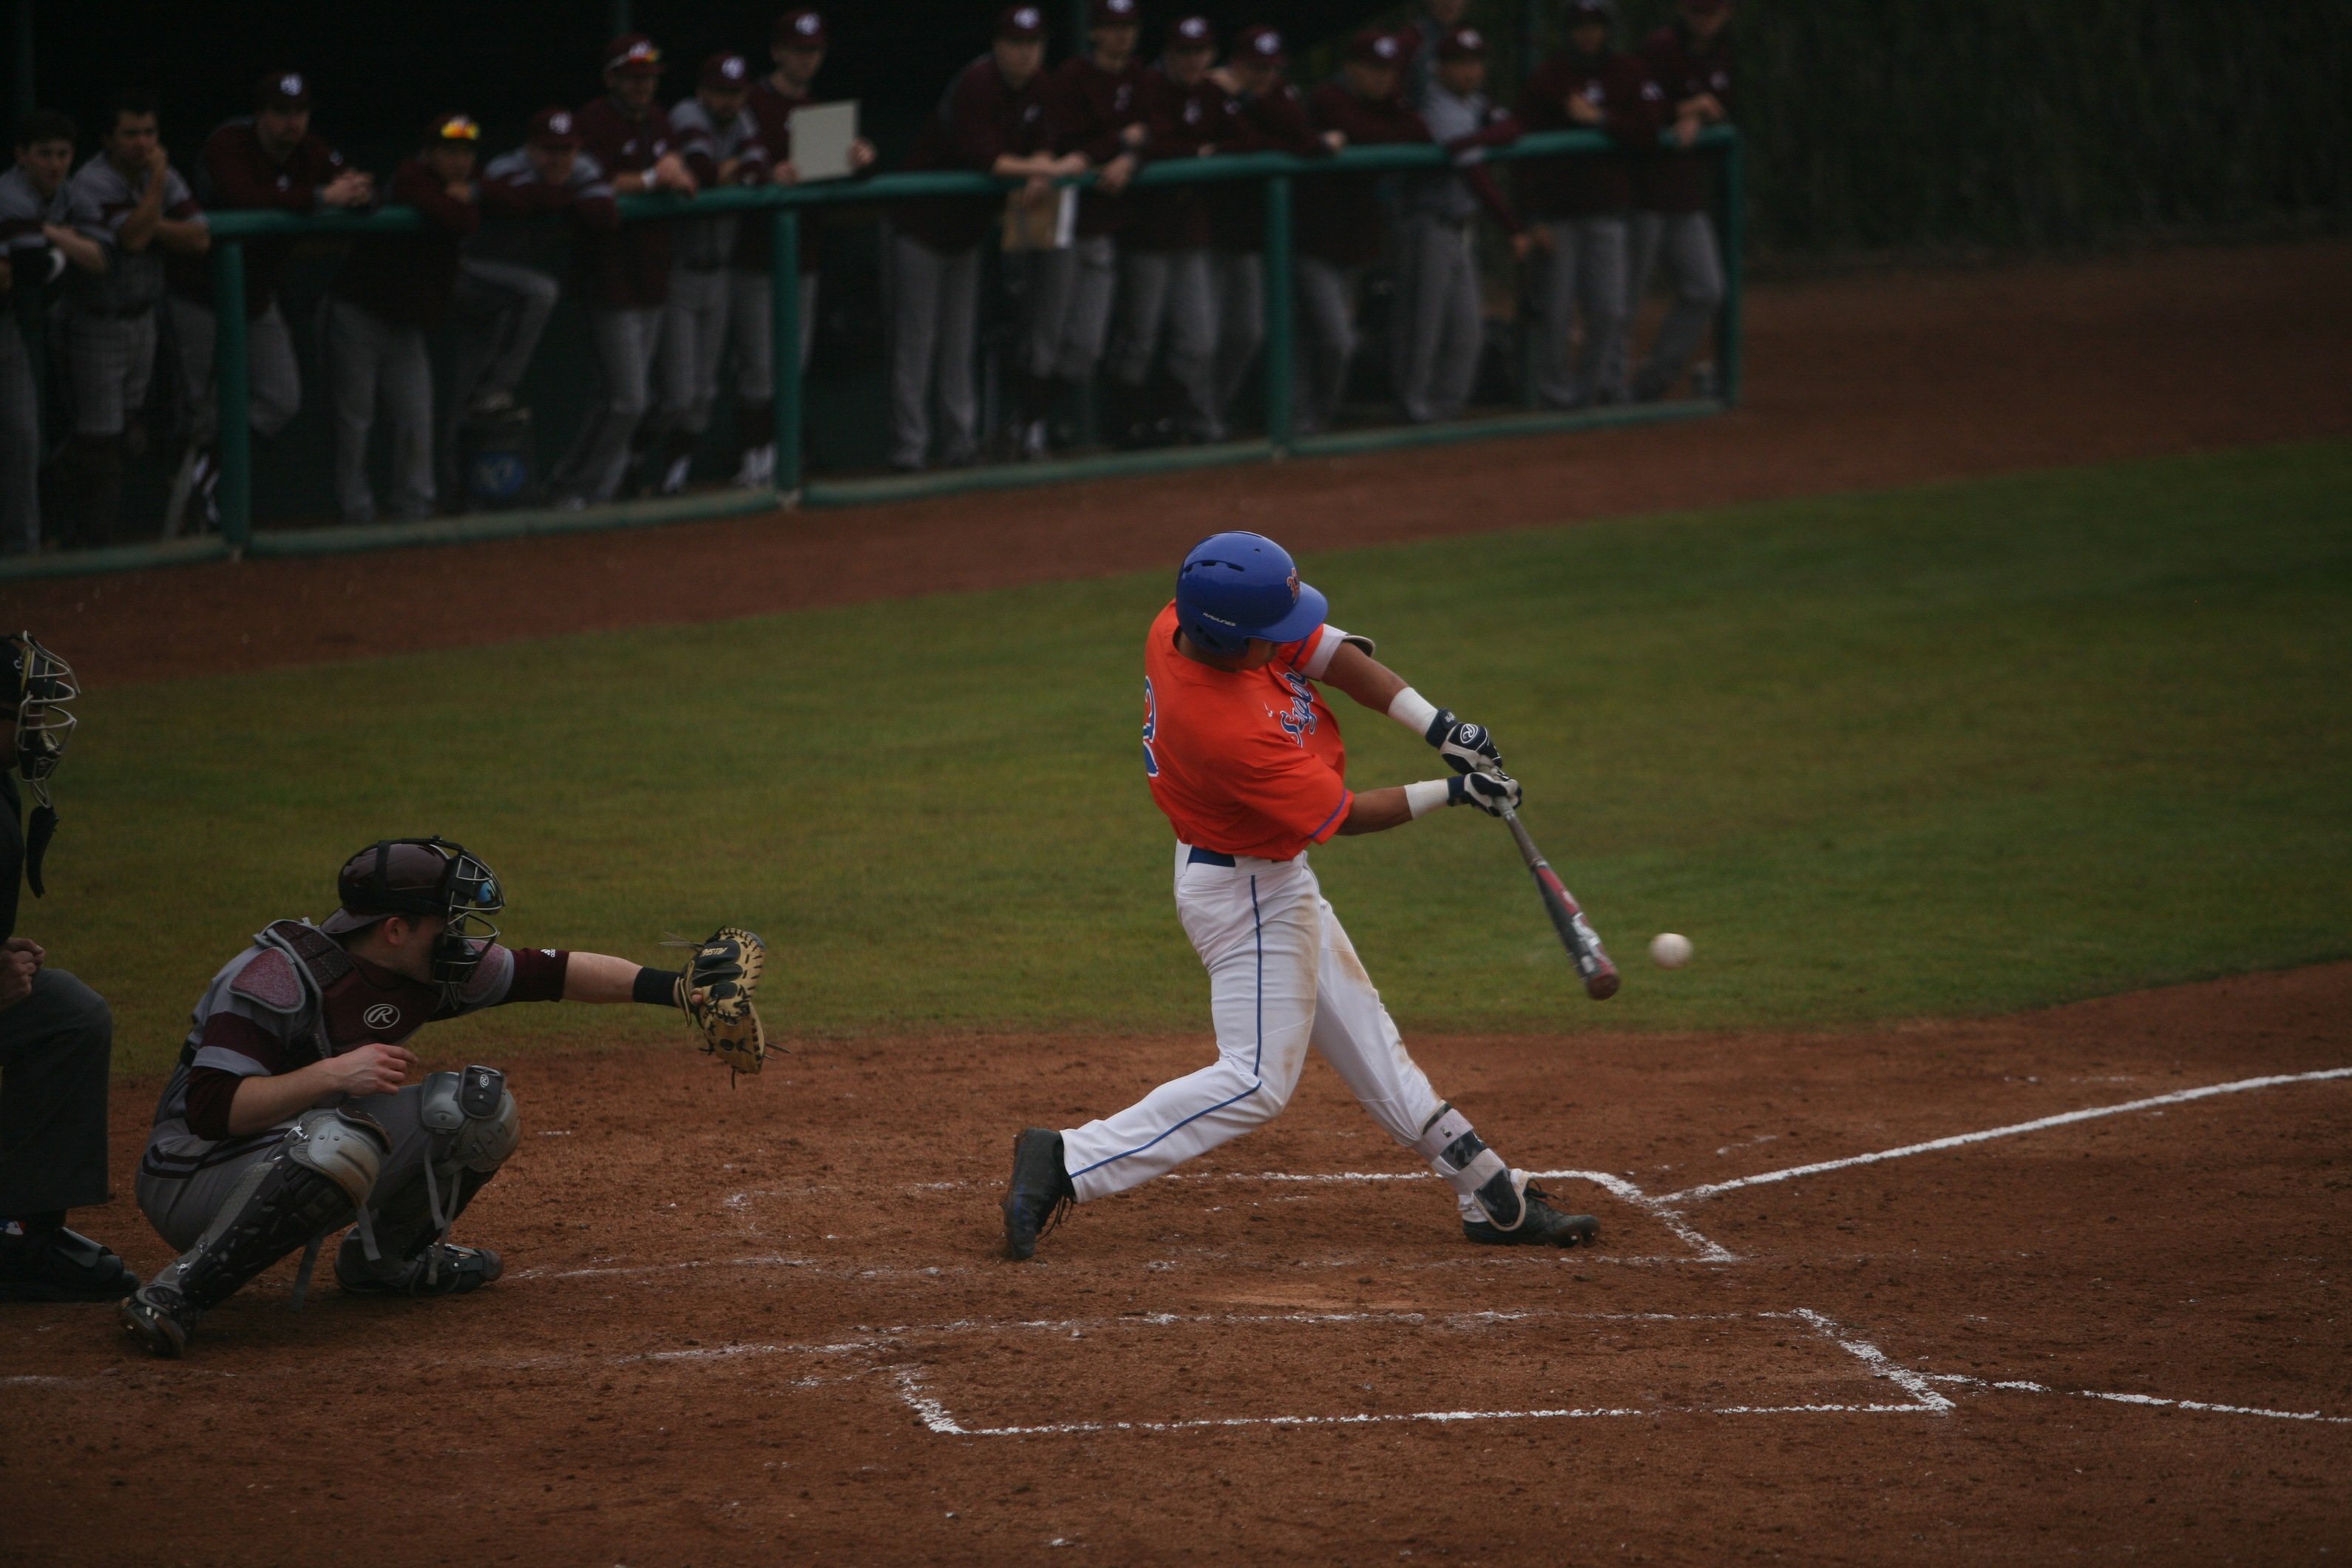 Pomona-Pitzer's Nishioka and Chapman's Love Named Academic All-America Division III Baseball Team